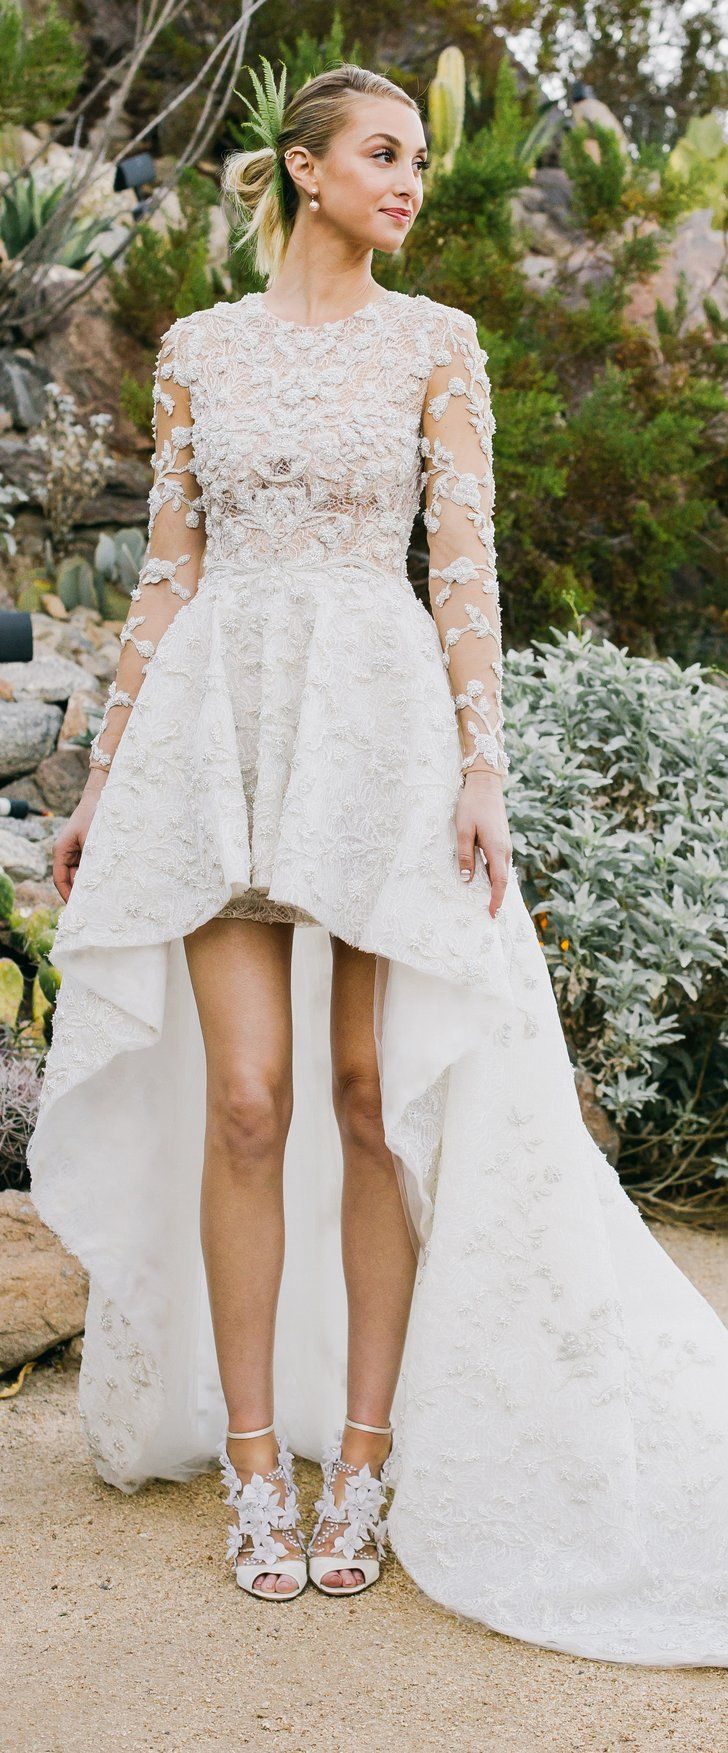 Whitney portus wedding gown is just what youud expect u until you